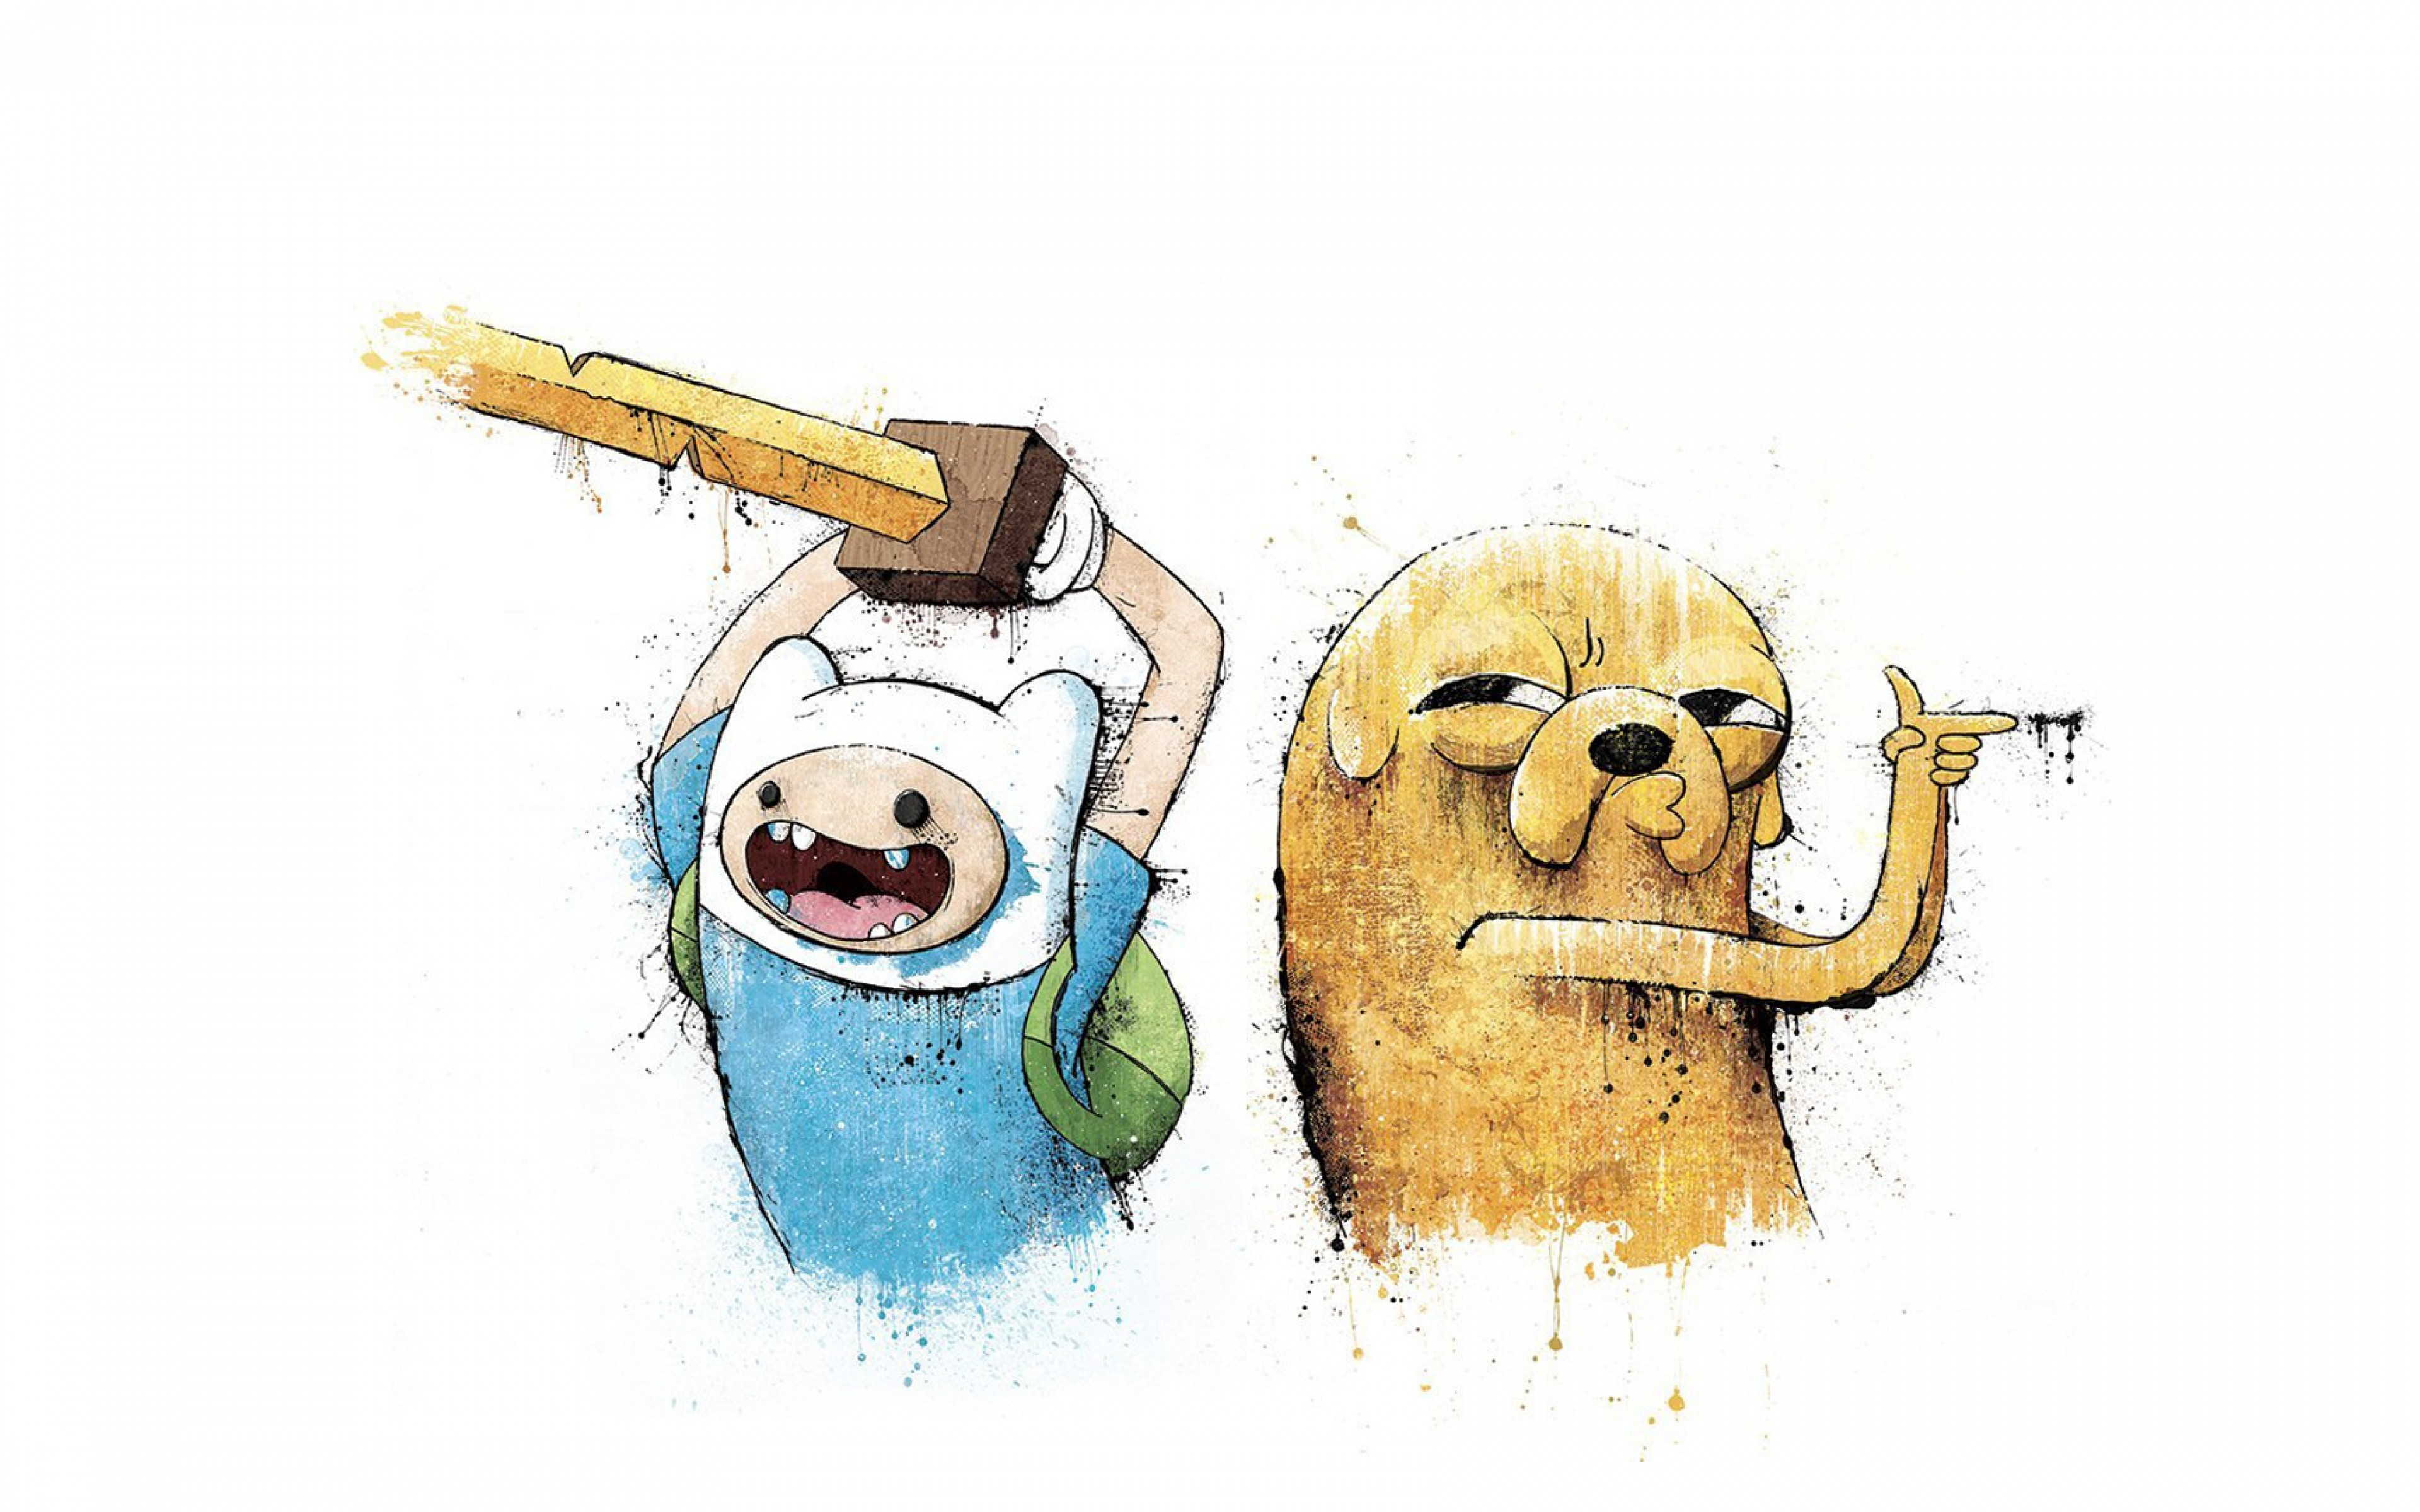 3840x2400 Preview wallpaper adventure time, finn and jake, art 3840x2400